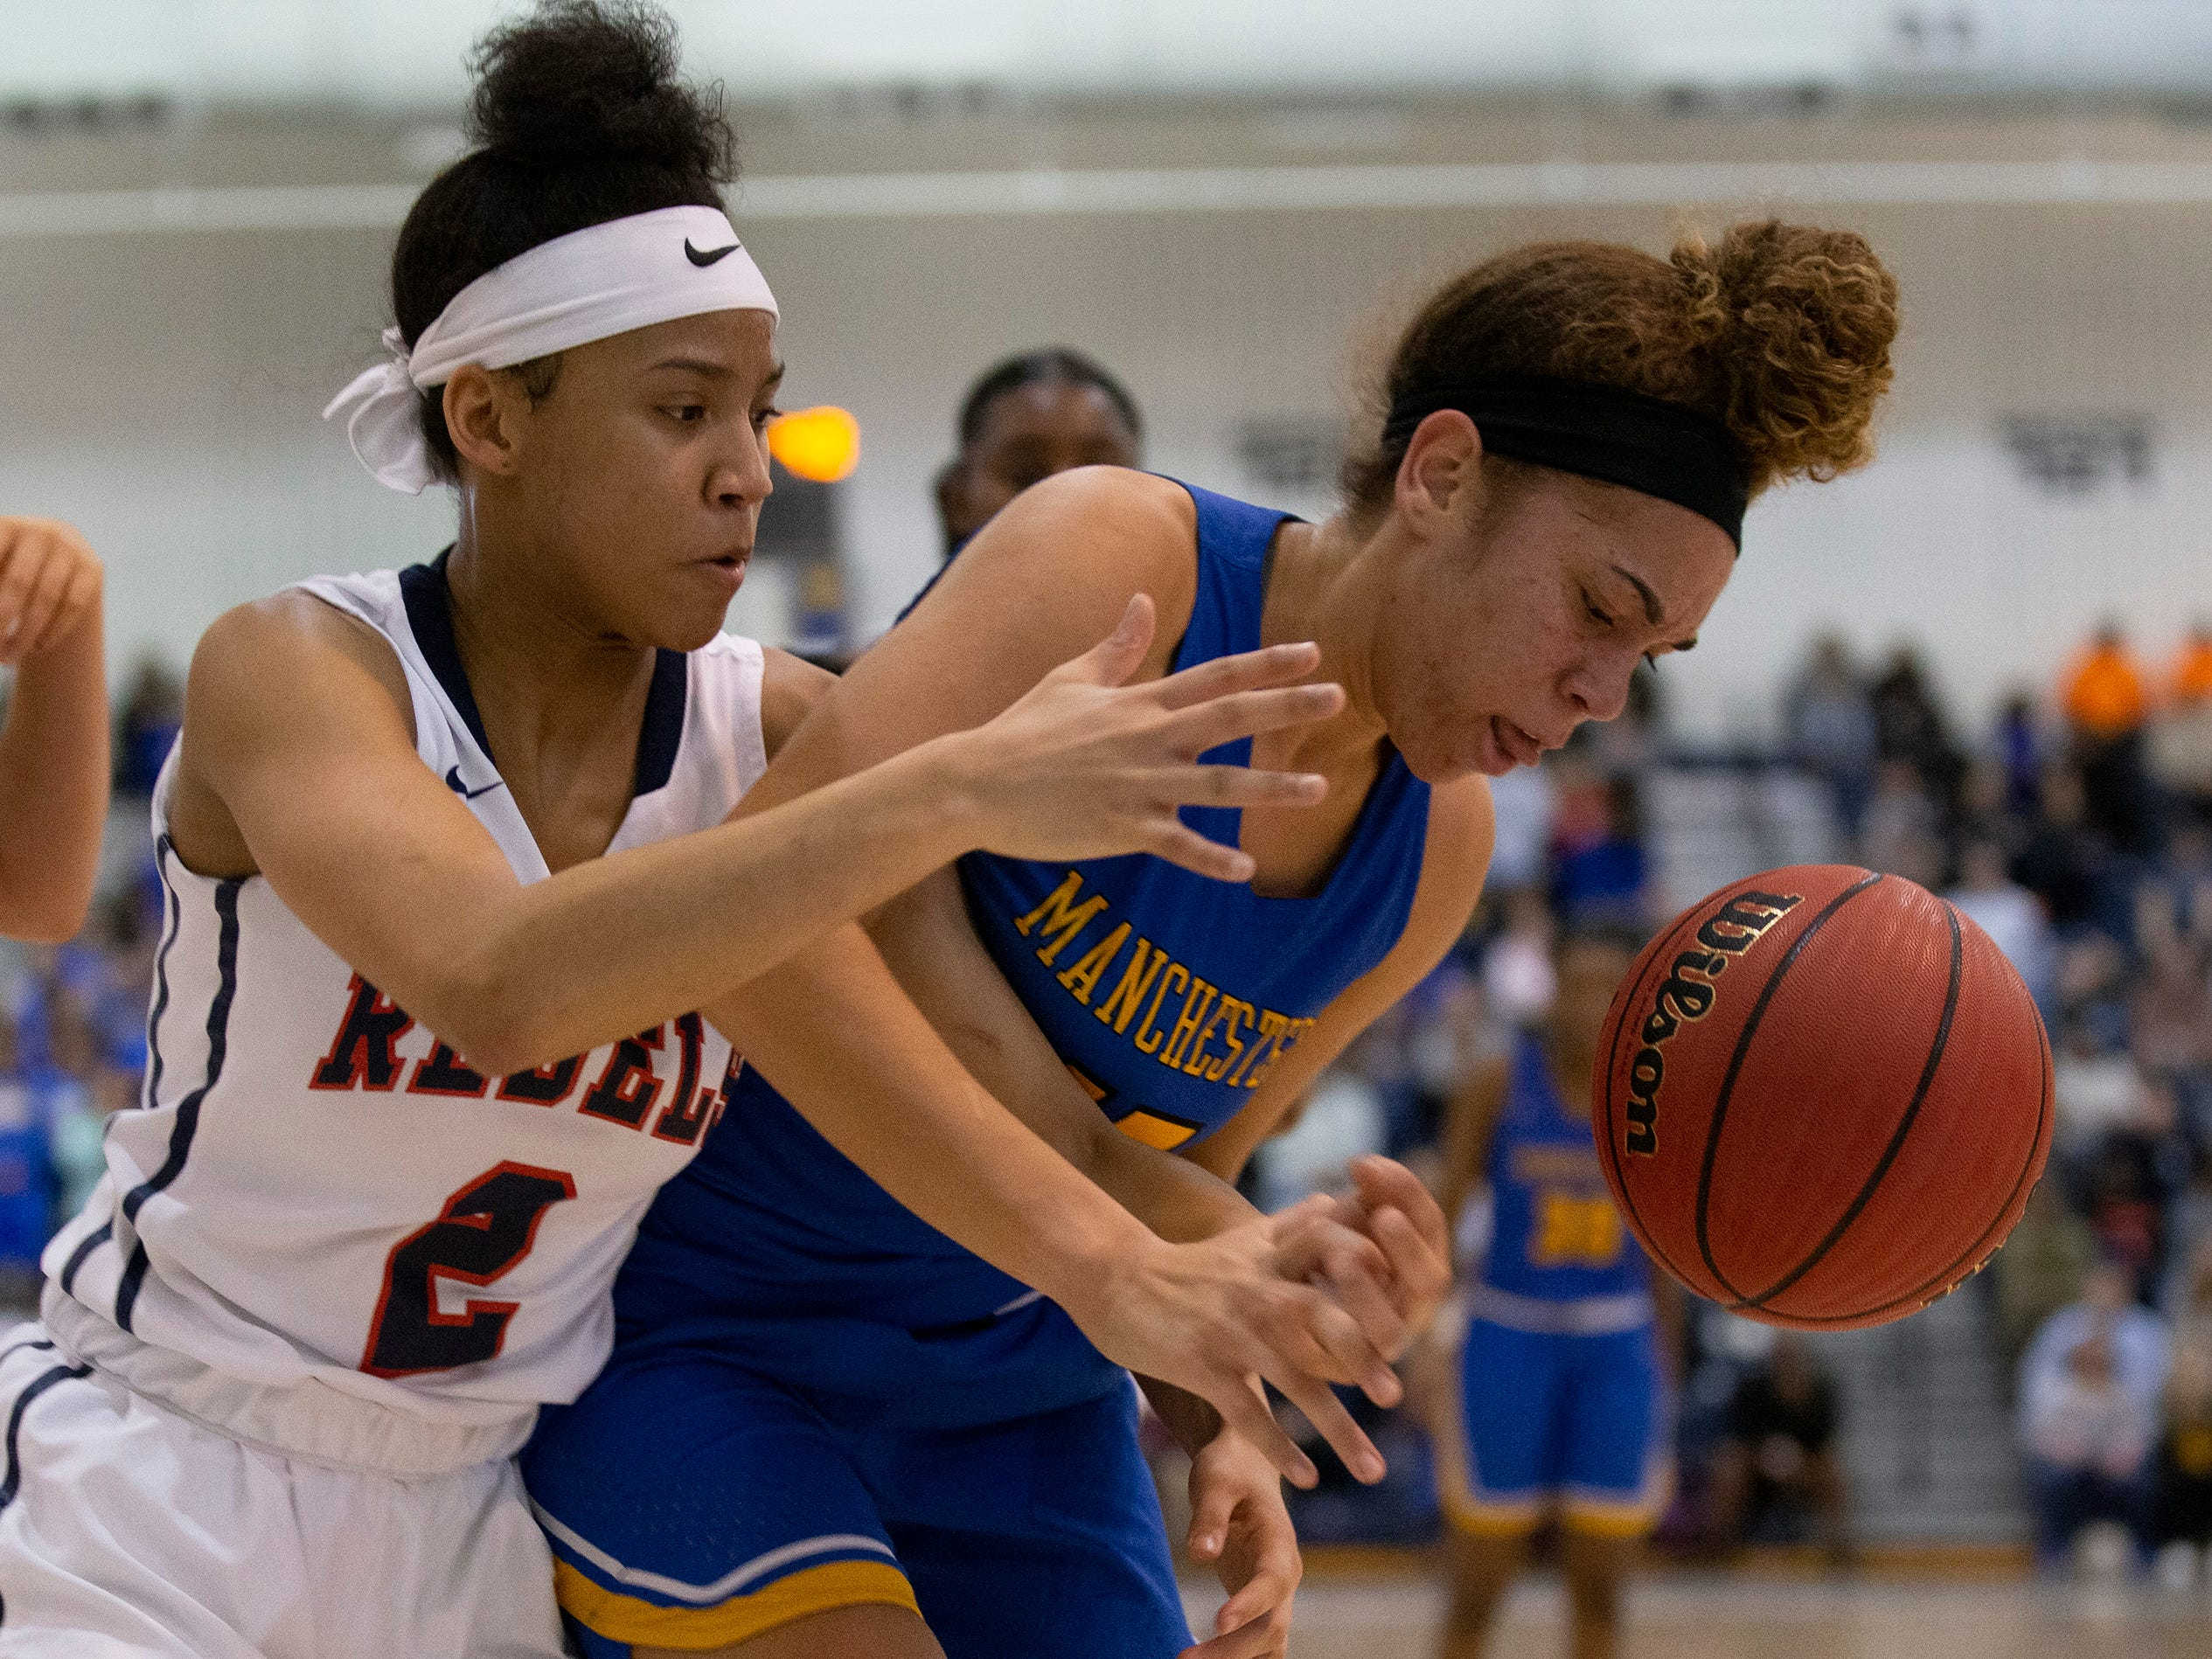 Manchester's Dakota Adams and Saddle River's Saniah Caldwell battle for loose ball. Manchester Girls Basketball vs Saddle River Day in NJSIAA Tournament of Champions Semifinal in Toms River on March 14, 2019.